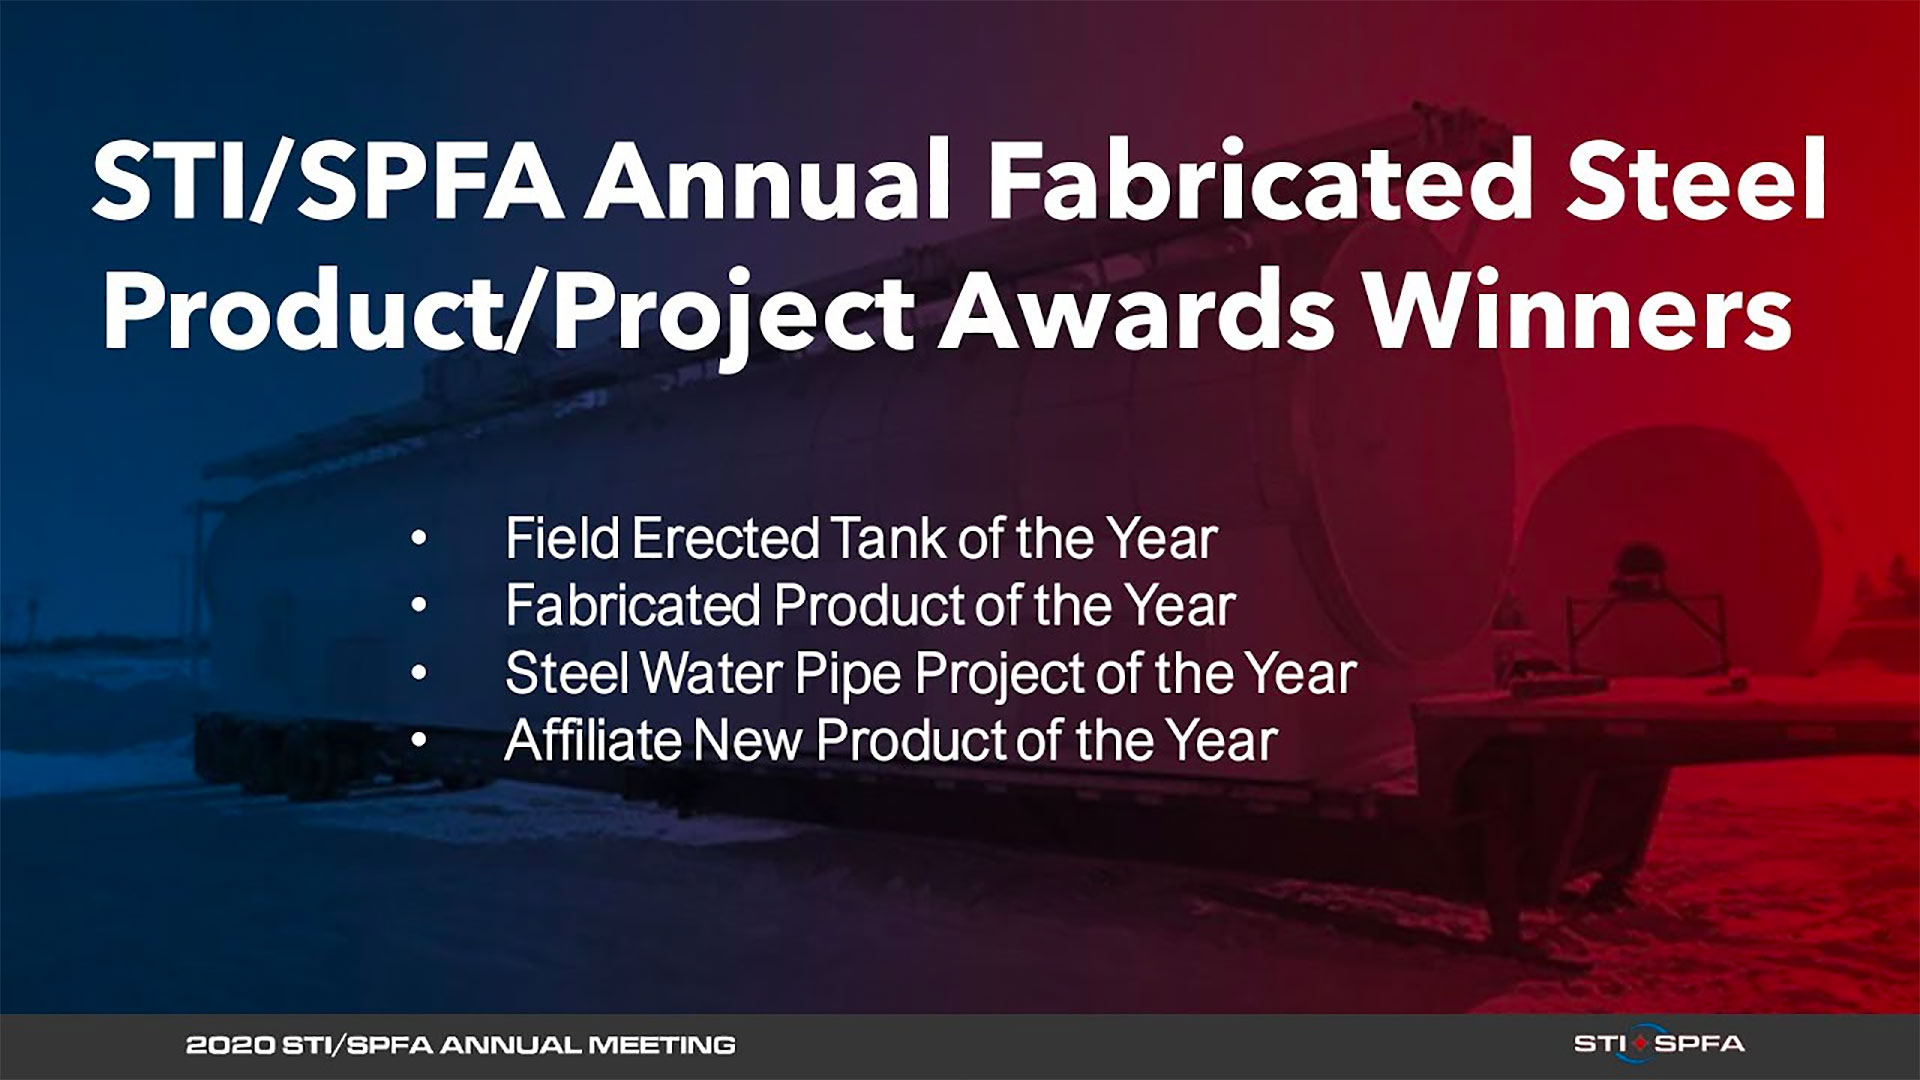 2019 STI/SPFA Annual Fabricated Steel Product/Project Awards Presentation